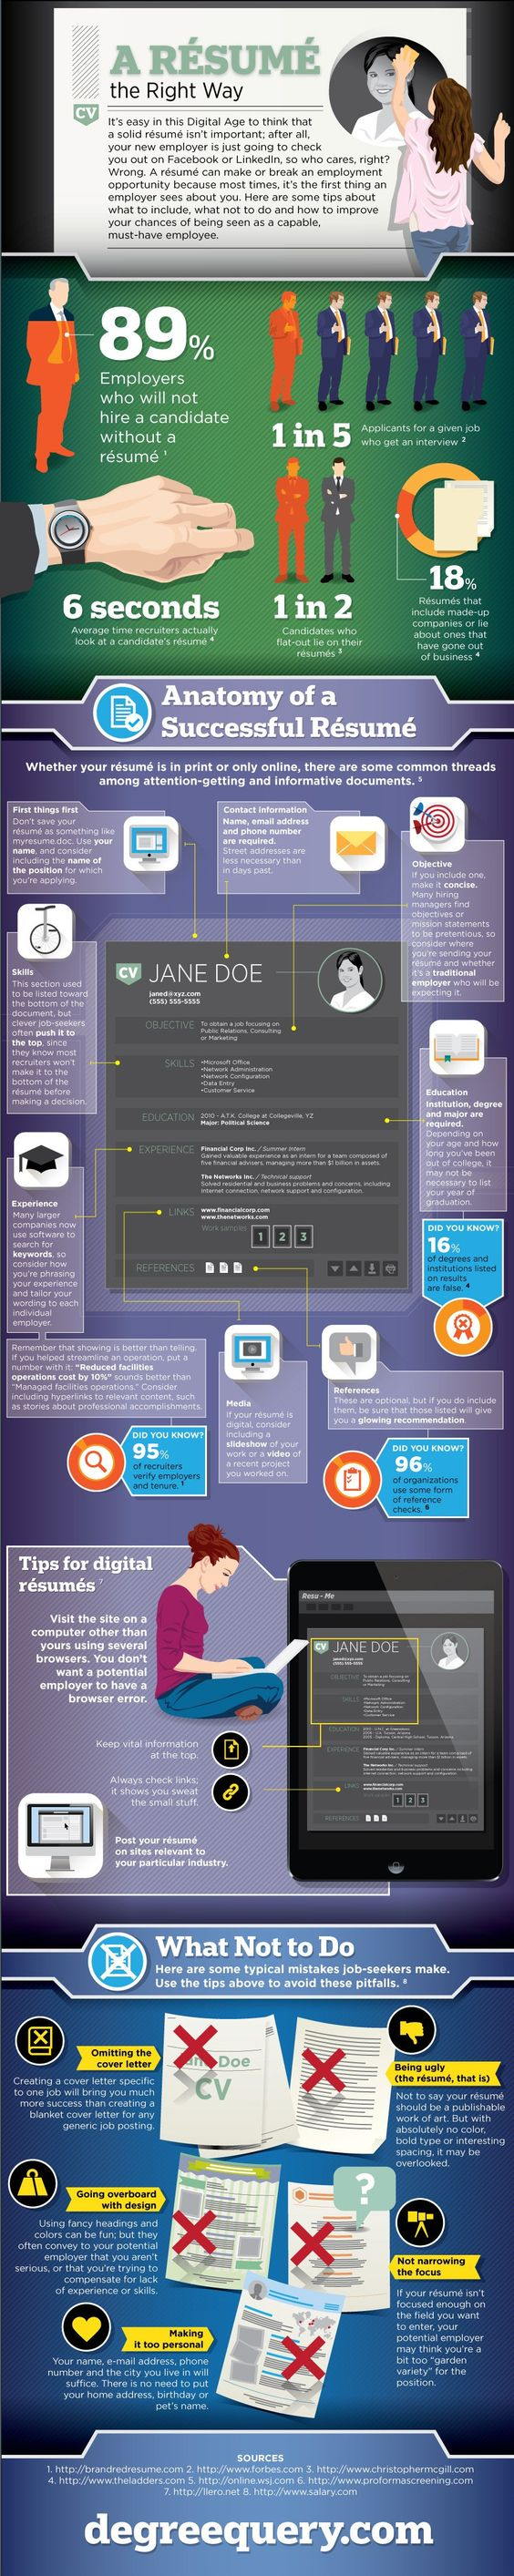 a resume the right way infographic flats resume tips and interview how interesting the average recruiter looks over interview